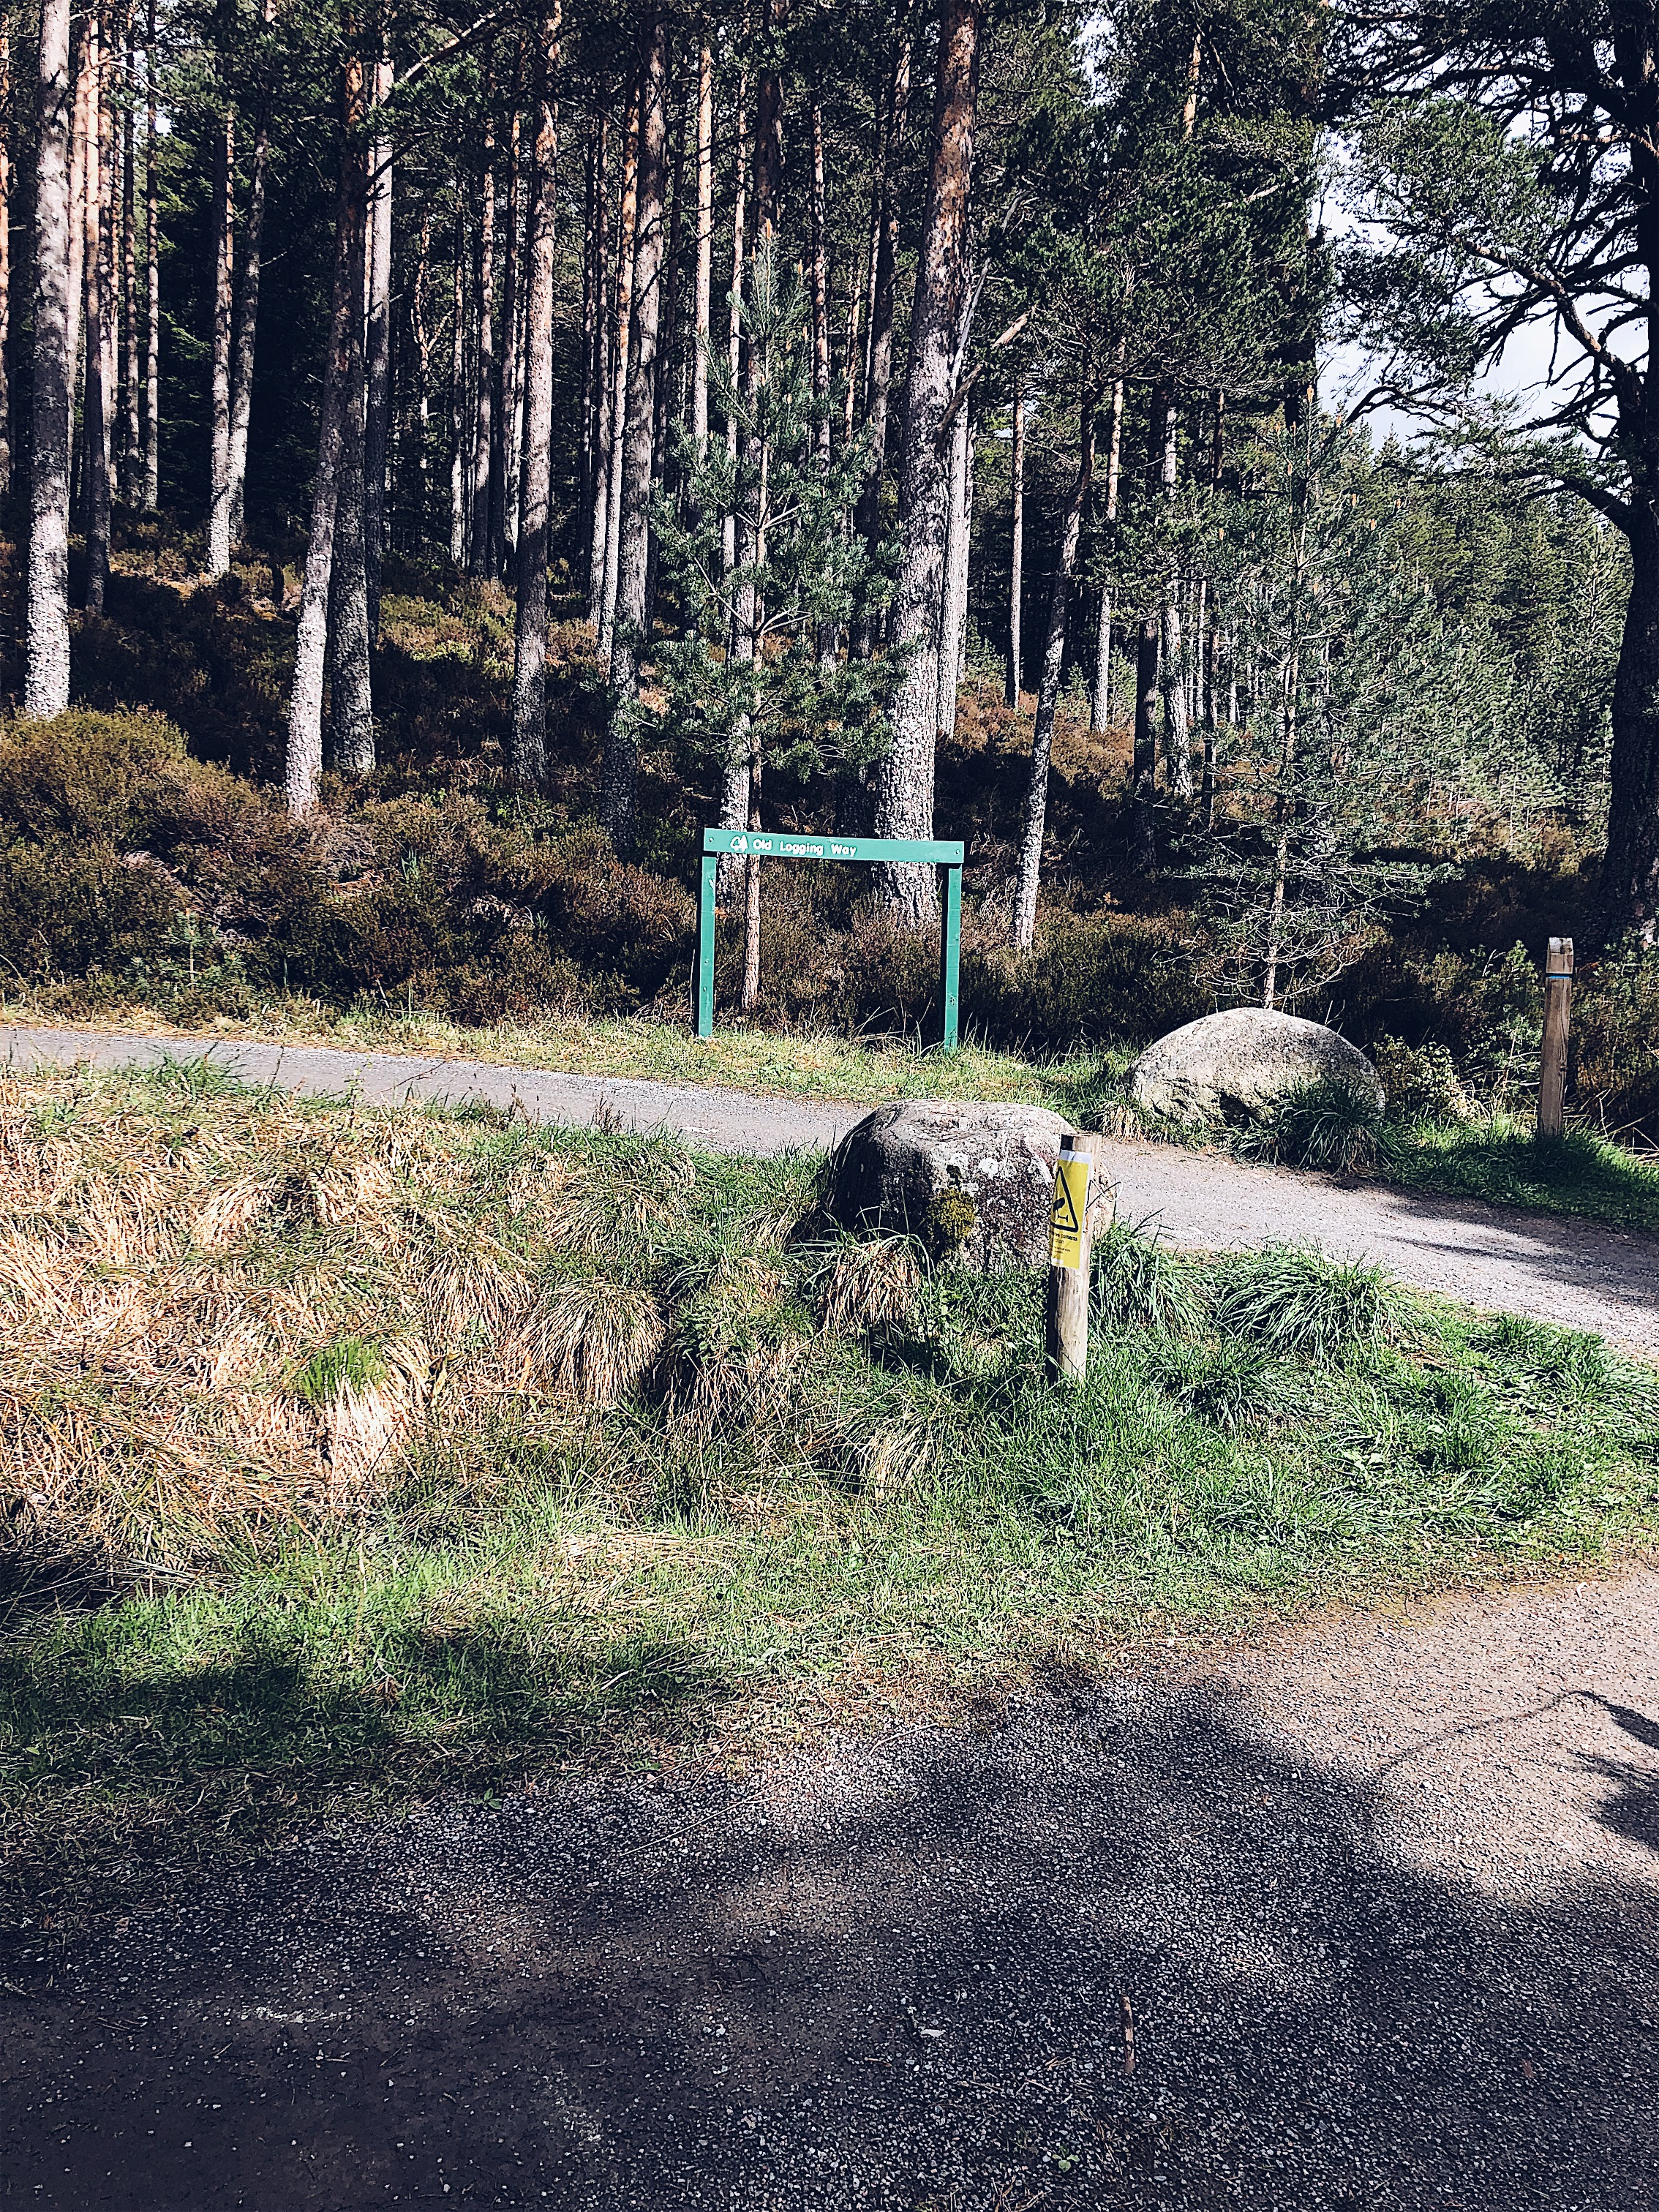 The Old Logging Way, route to the Green Loch, Aviemore